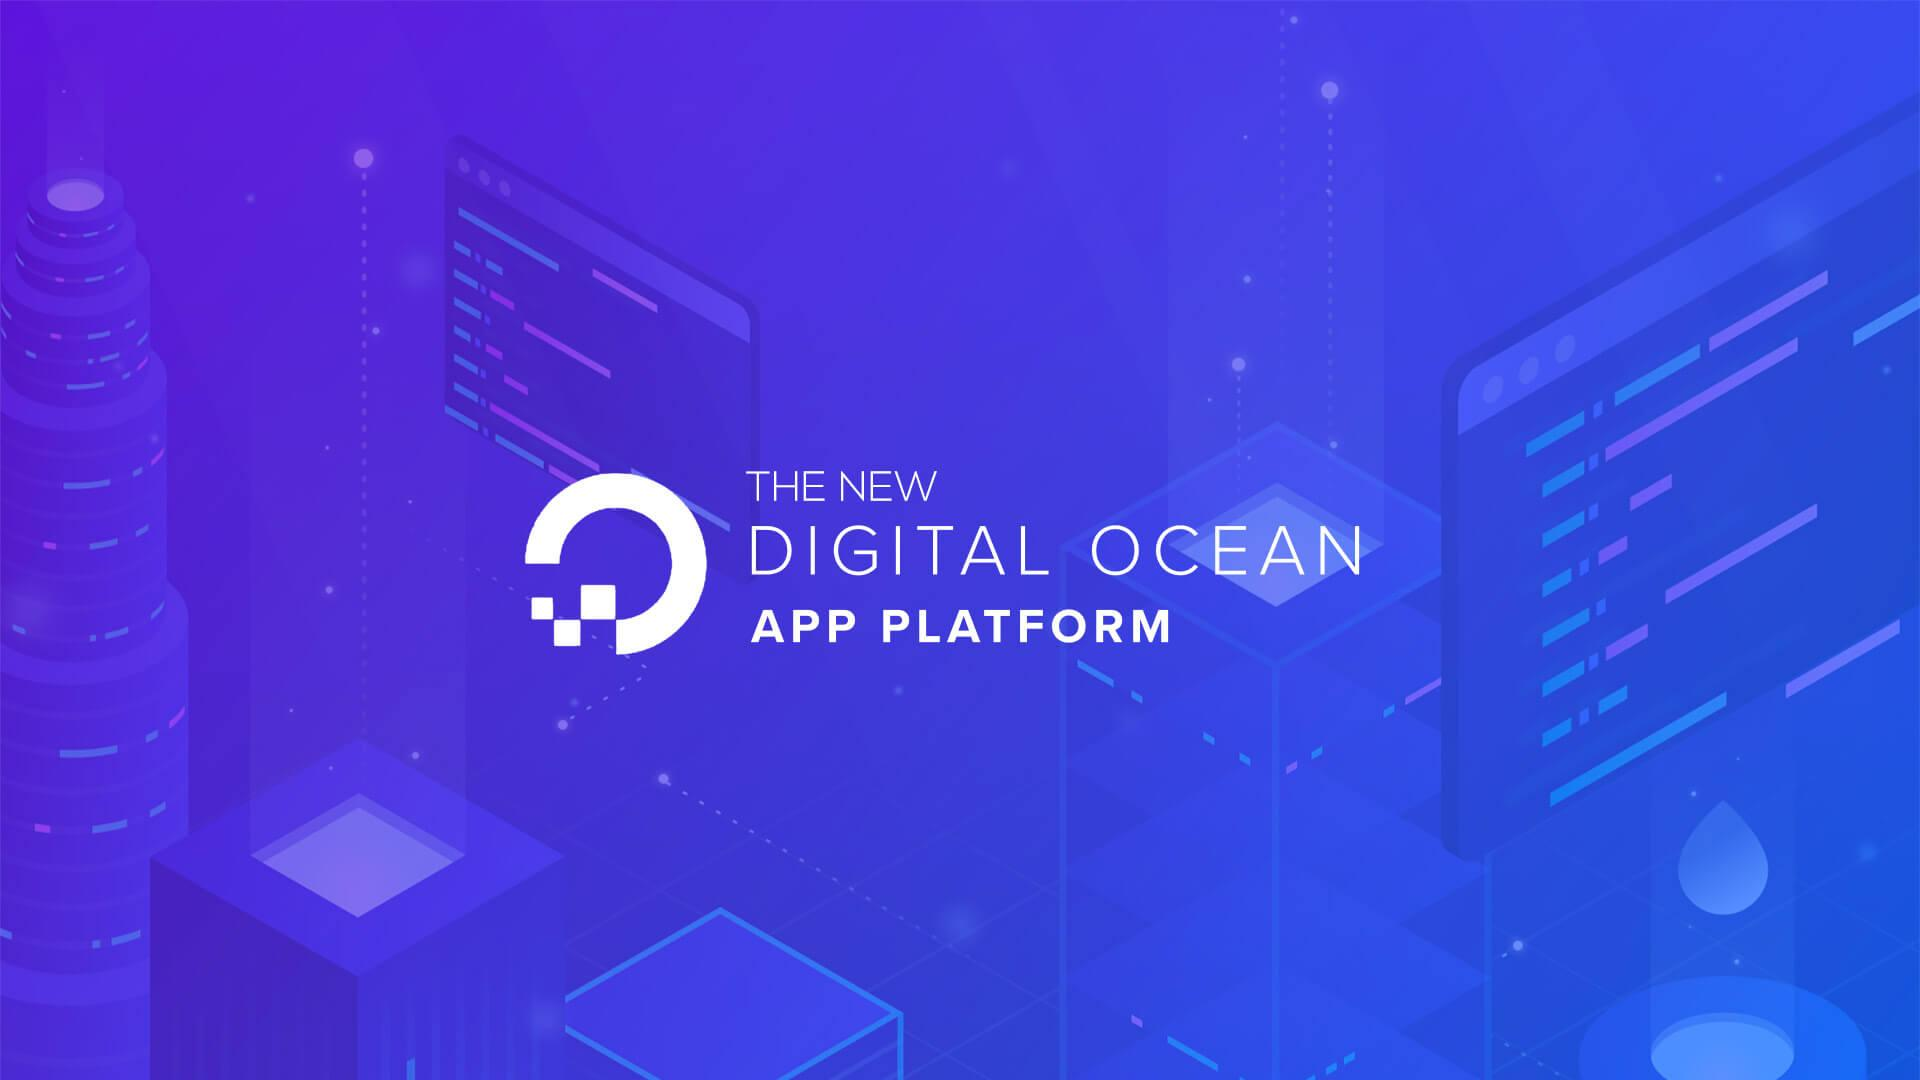 Digital Ocean's New App Platform